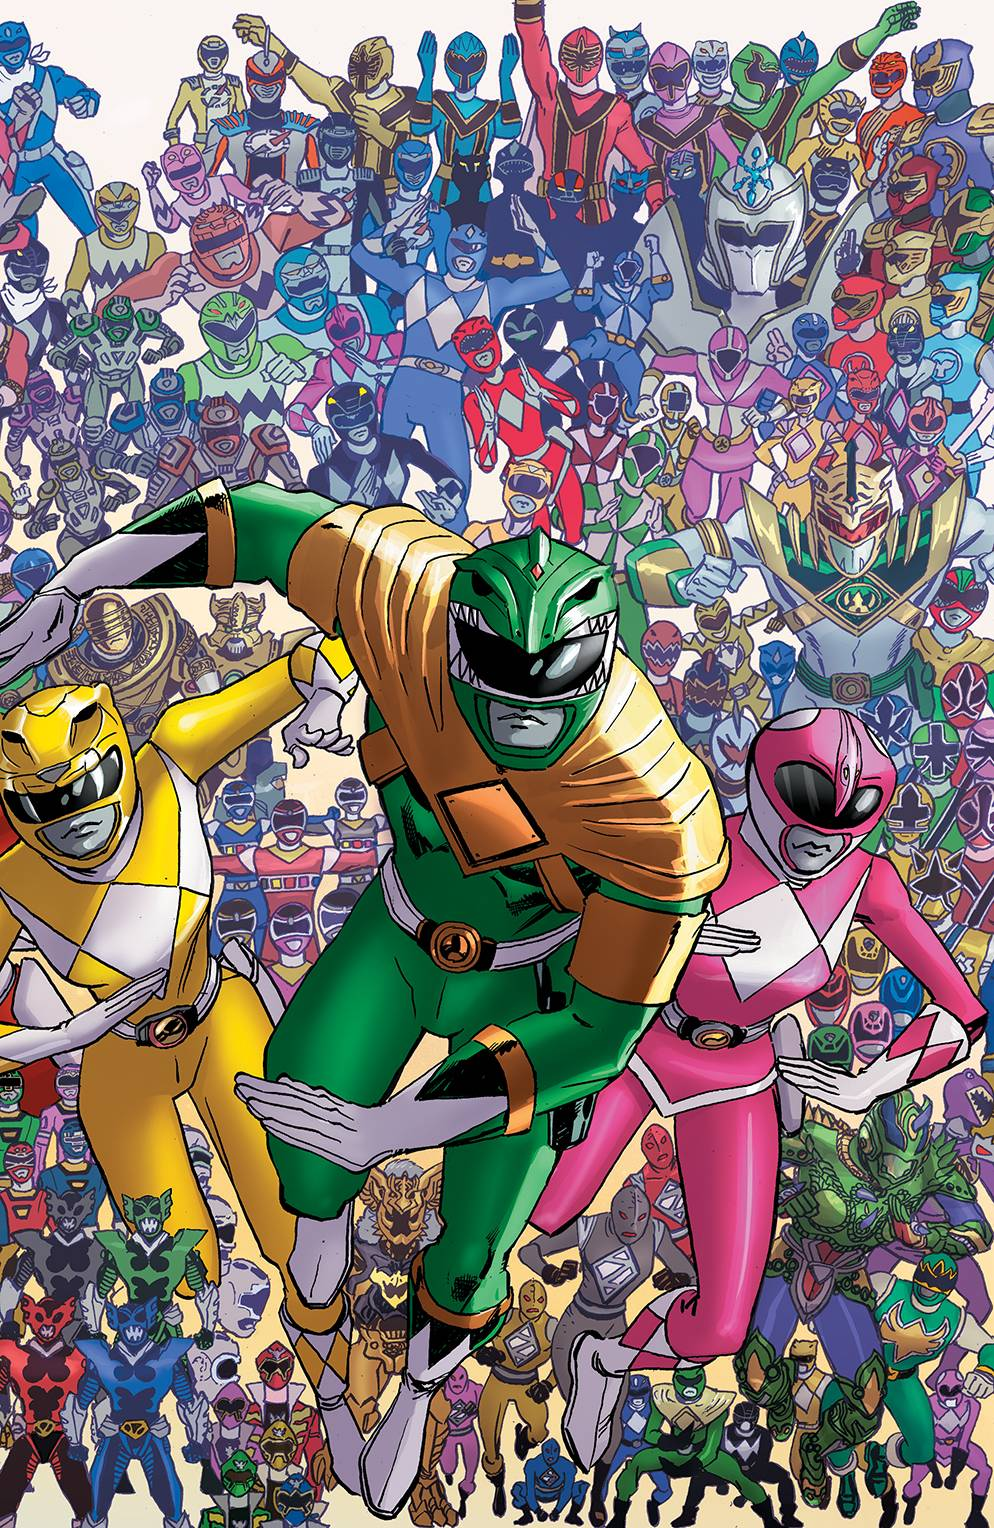 MIGHTY MORPHIN POWER RANGERS #25 1:25 COPY KOBLISH 03/28/18